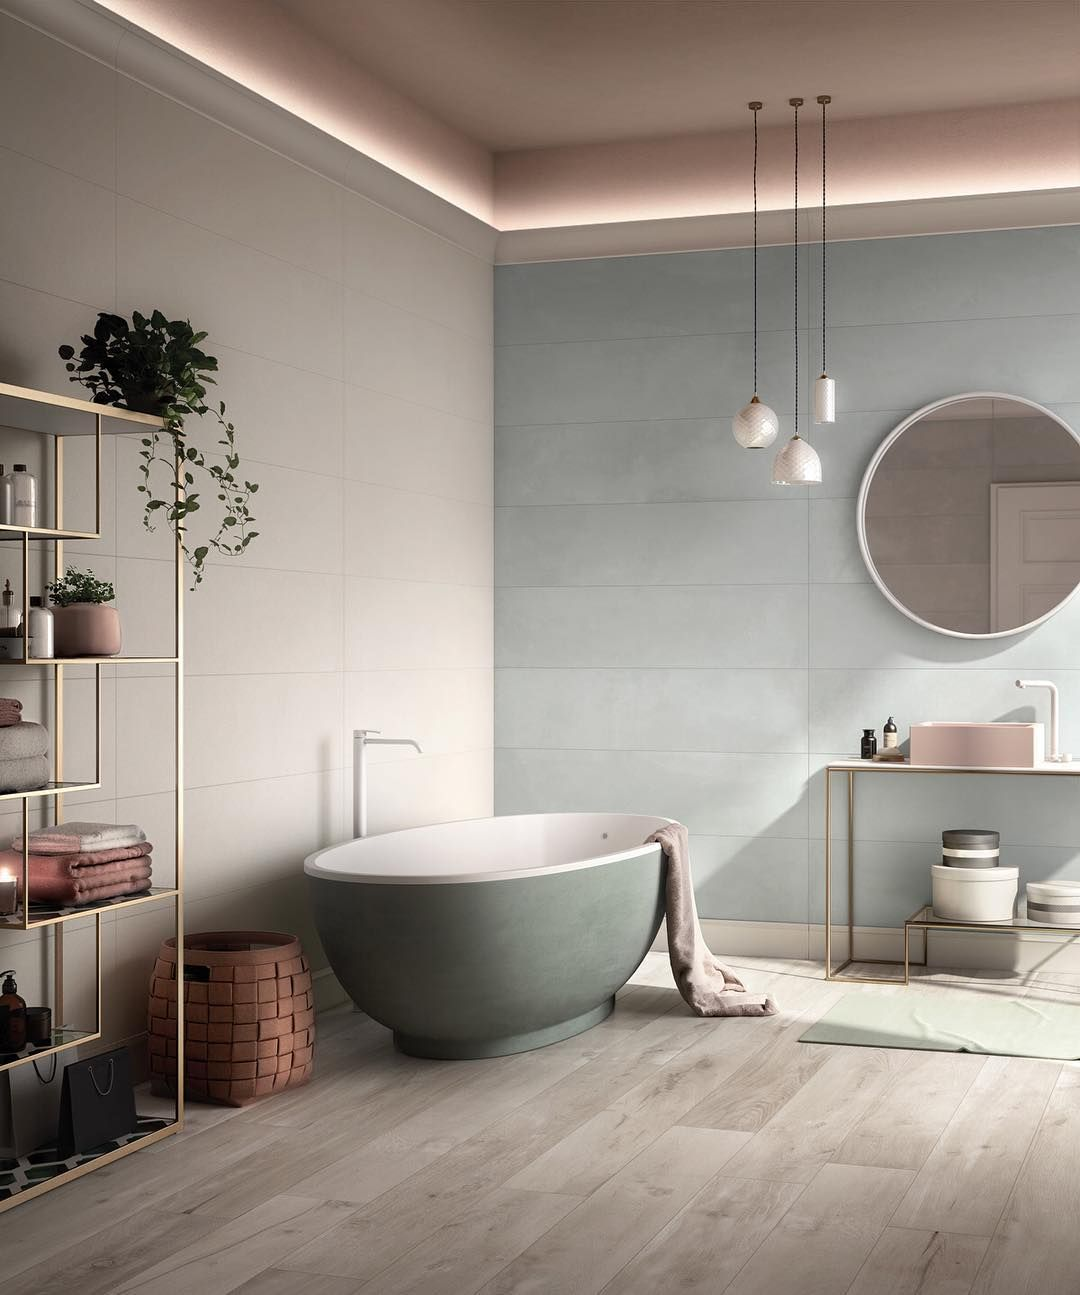 Pin Di Cathy Su Bathroom Ideas Arredo Bagno Bianco Layout Di